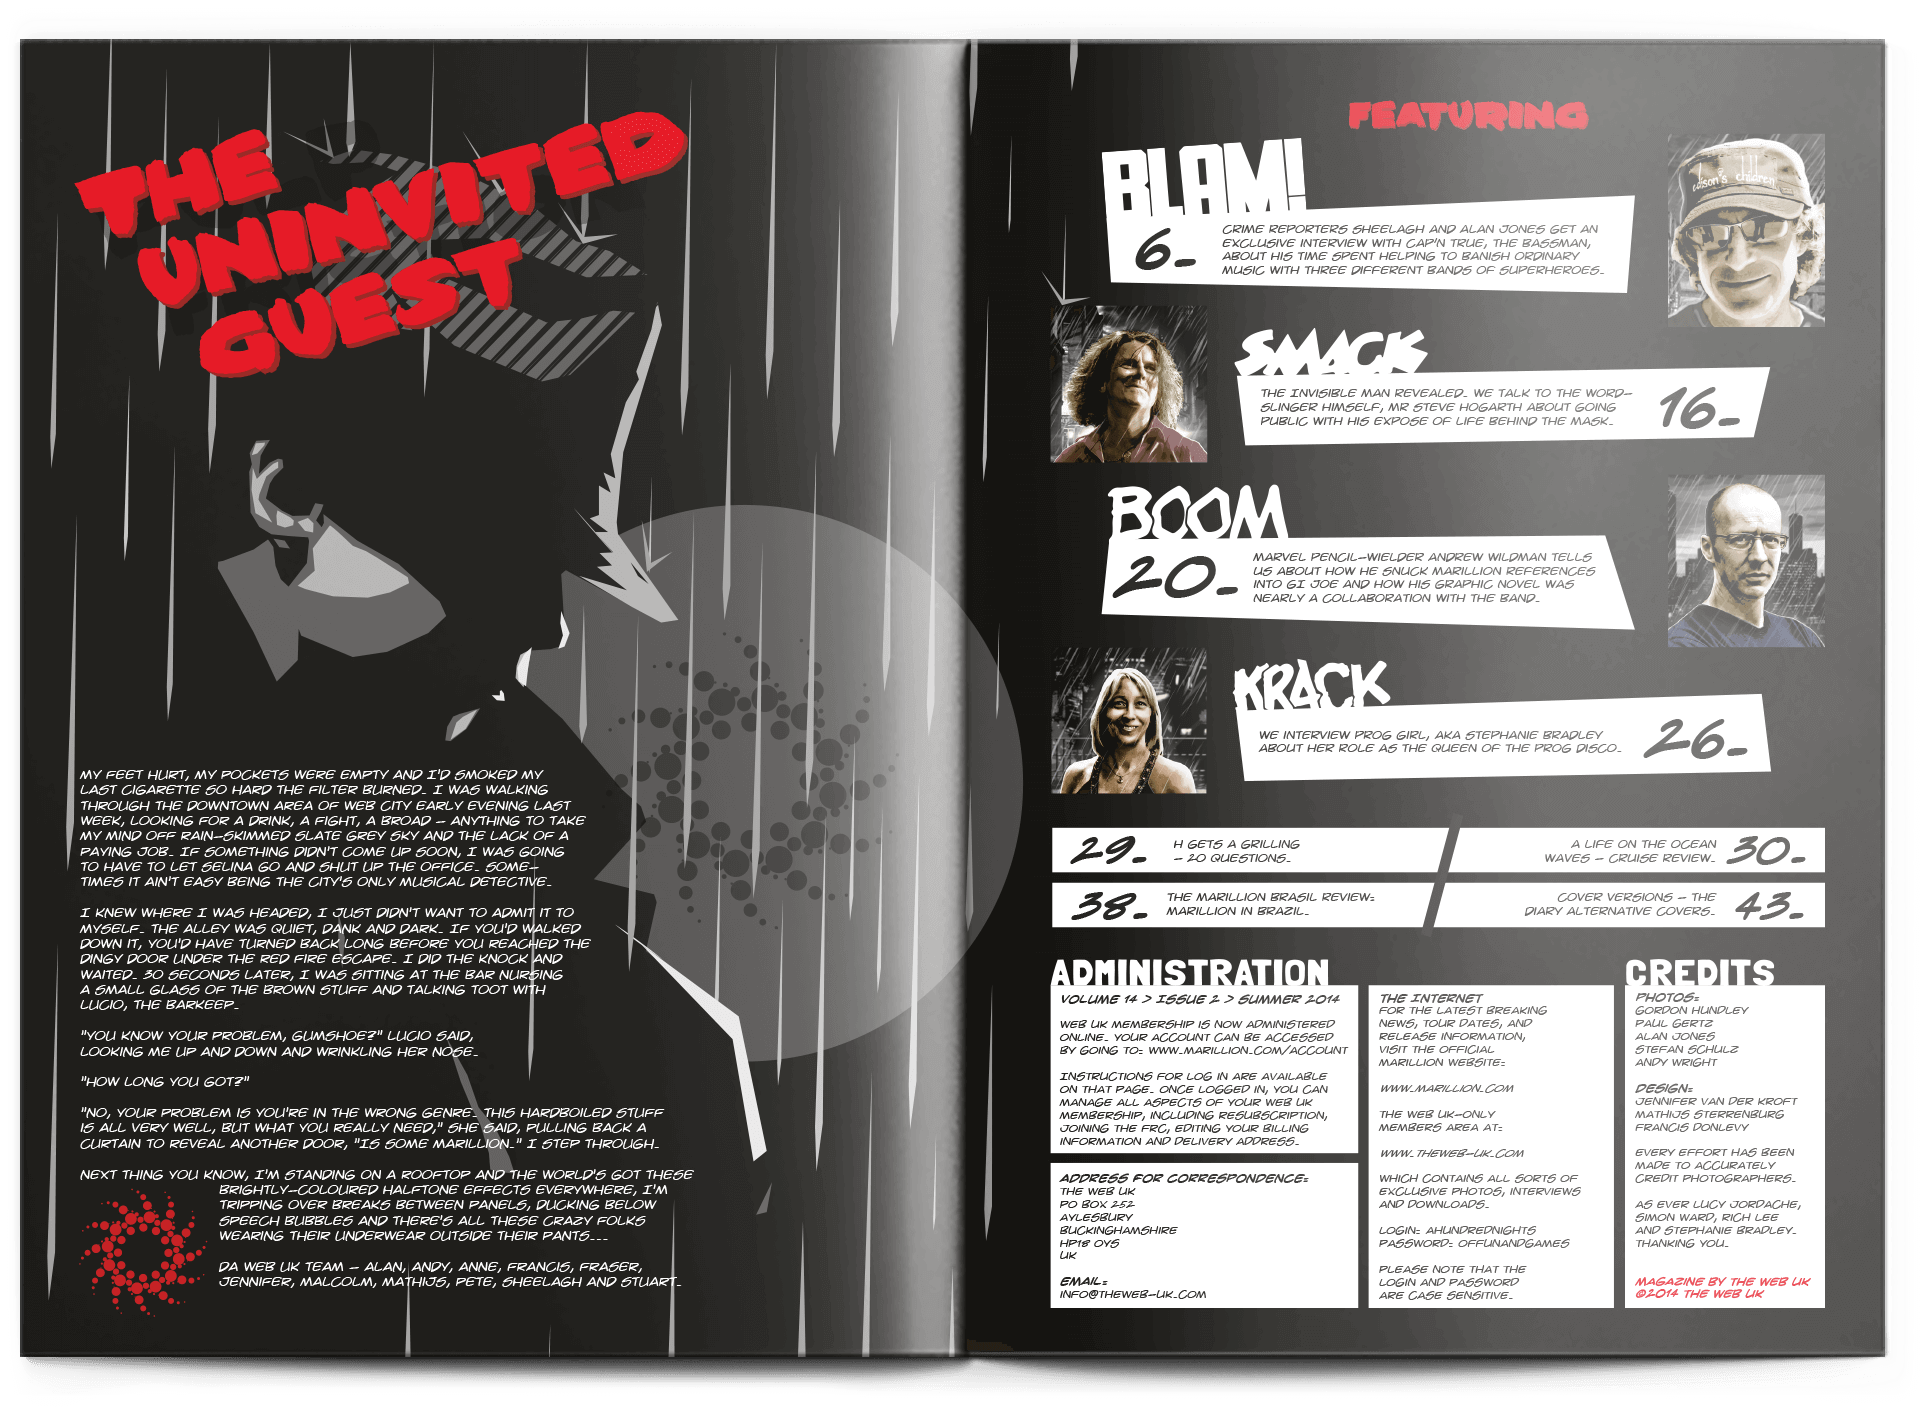 WebUK Magazine spread with the index in an art noir style